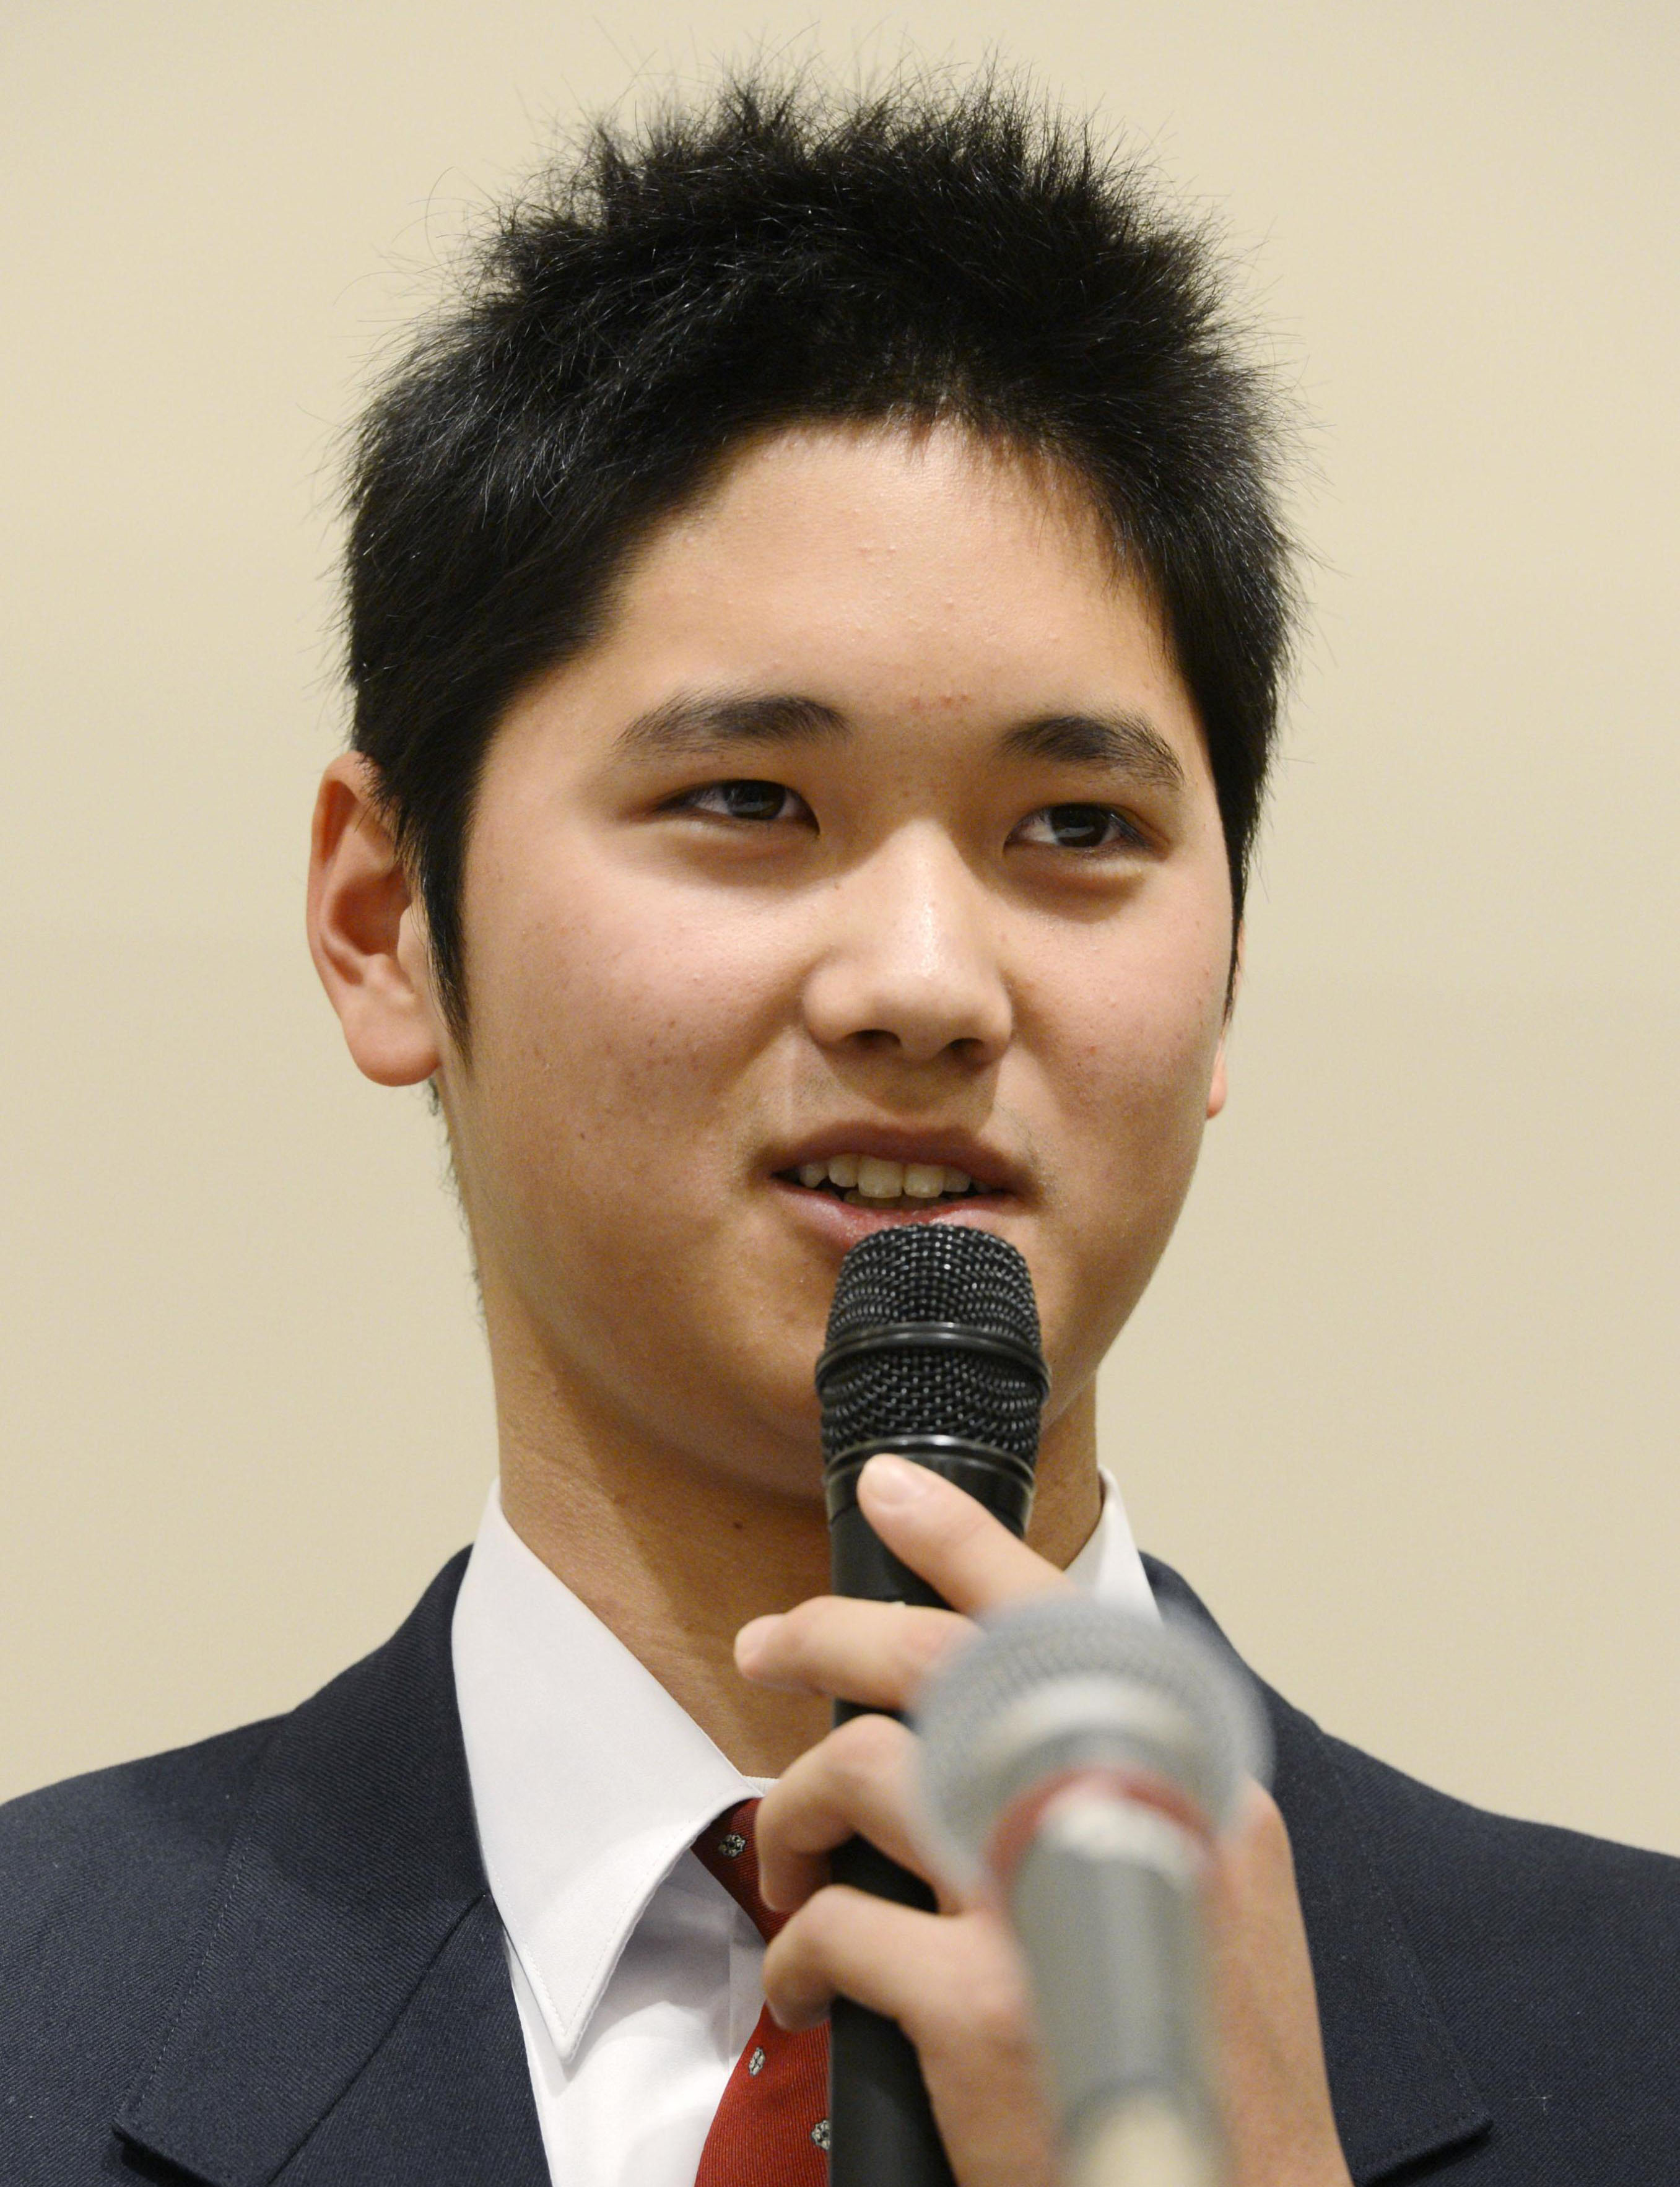 Hanamaki Higashi High School phenom Shohei Otani address the press Sunday. Otani recently changed his mind about heading straight to the majors and decided to join the Nippon Ham Fighters. | KYODO